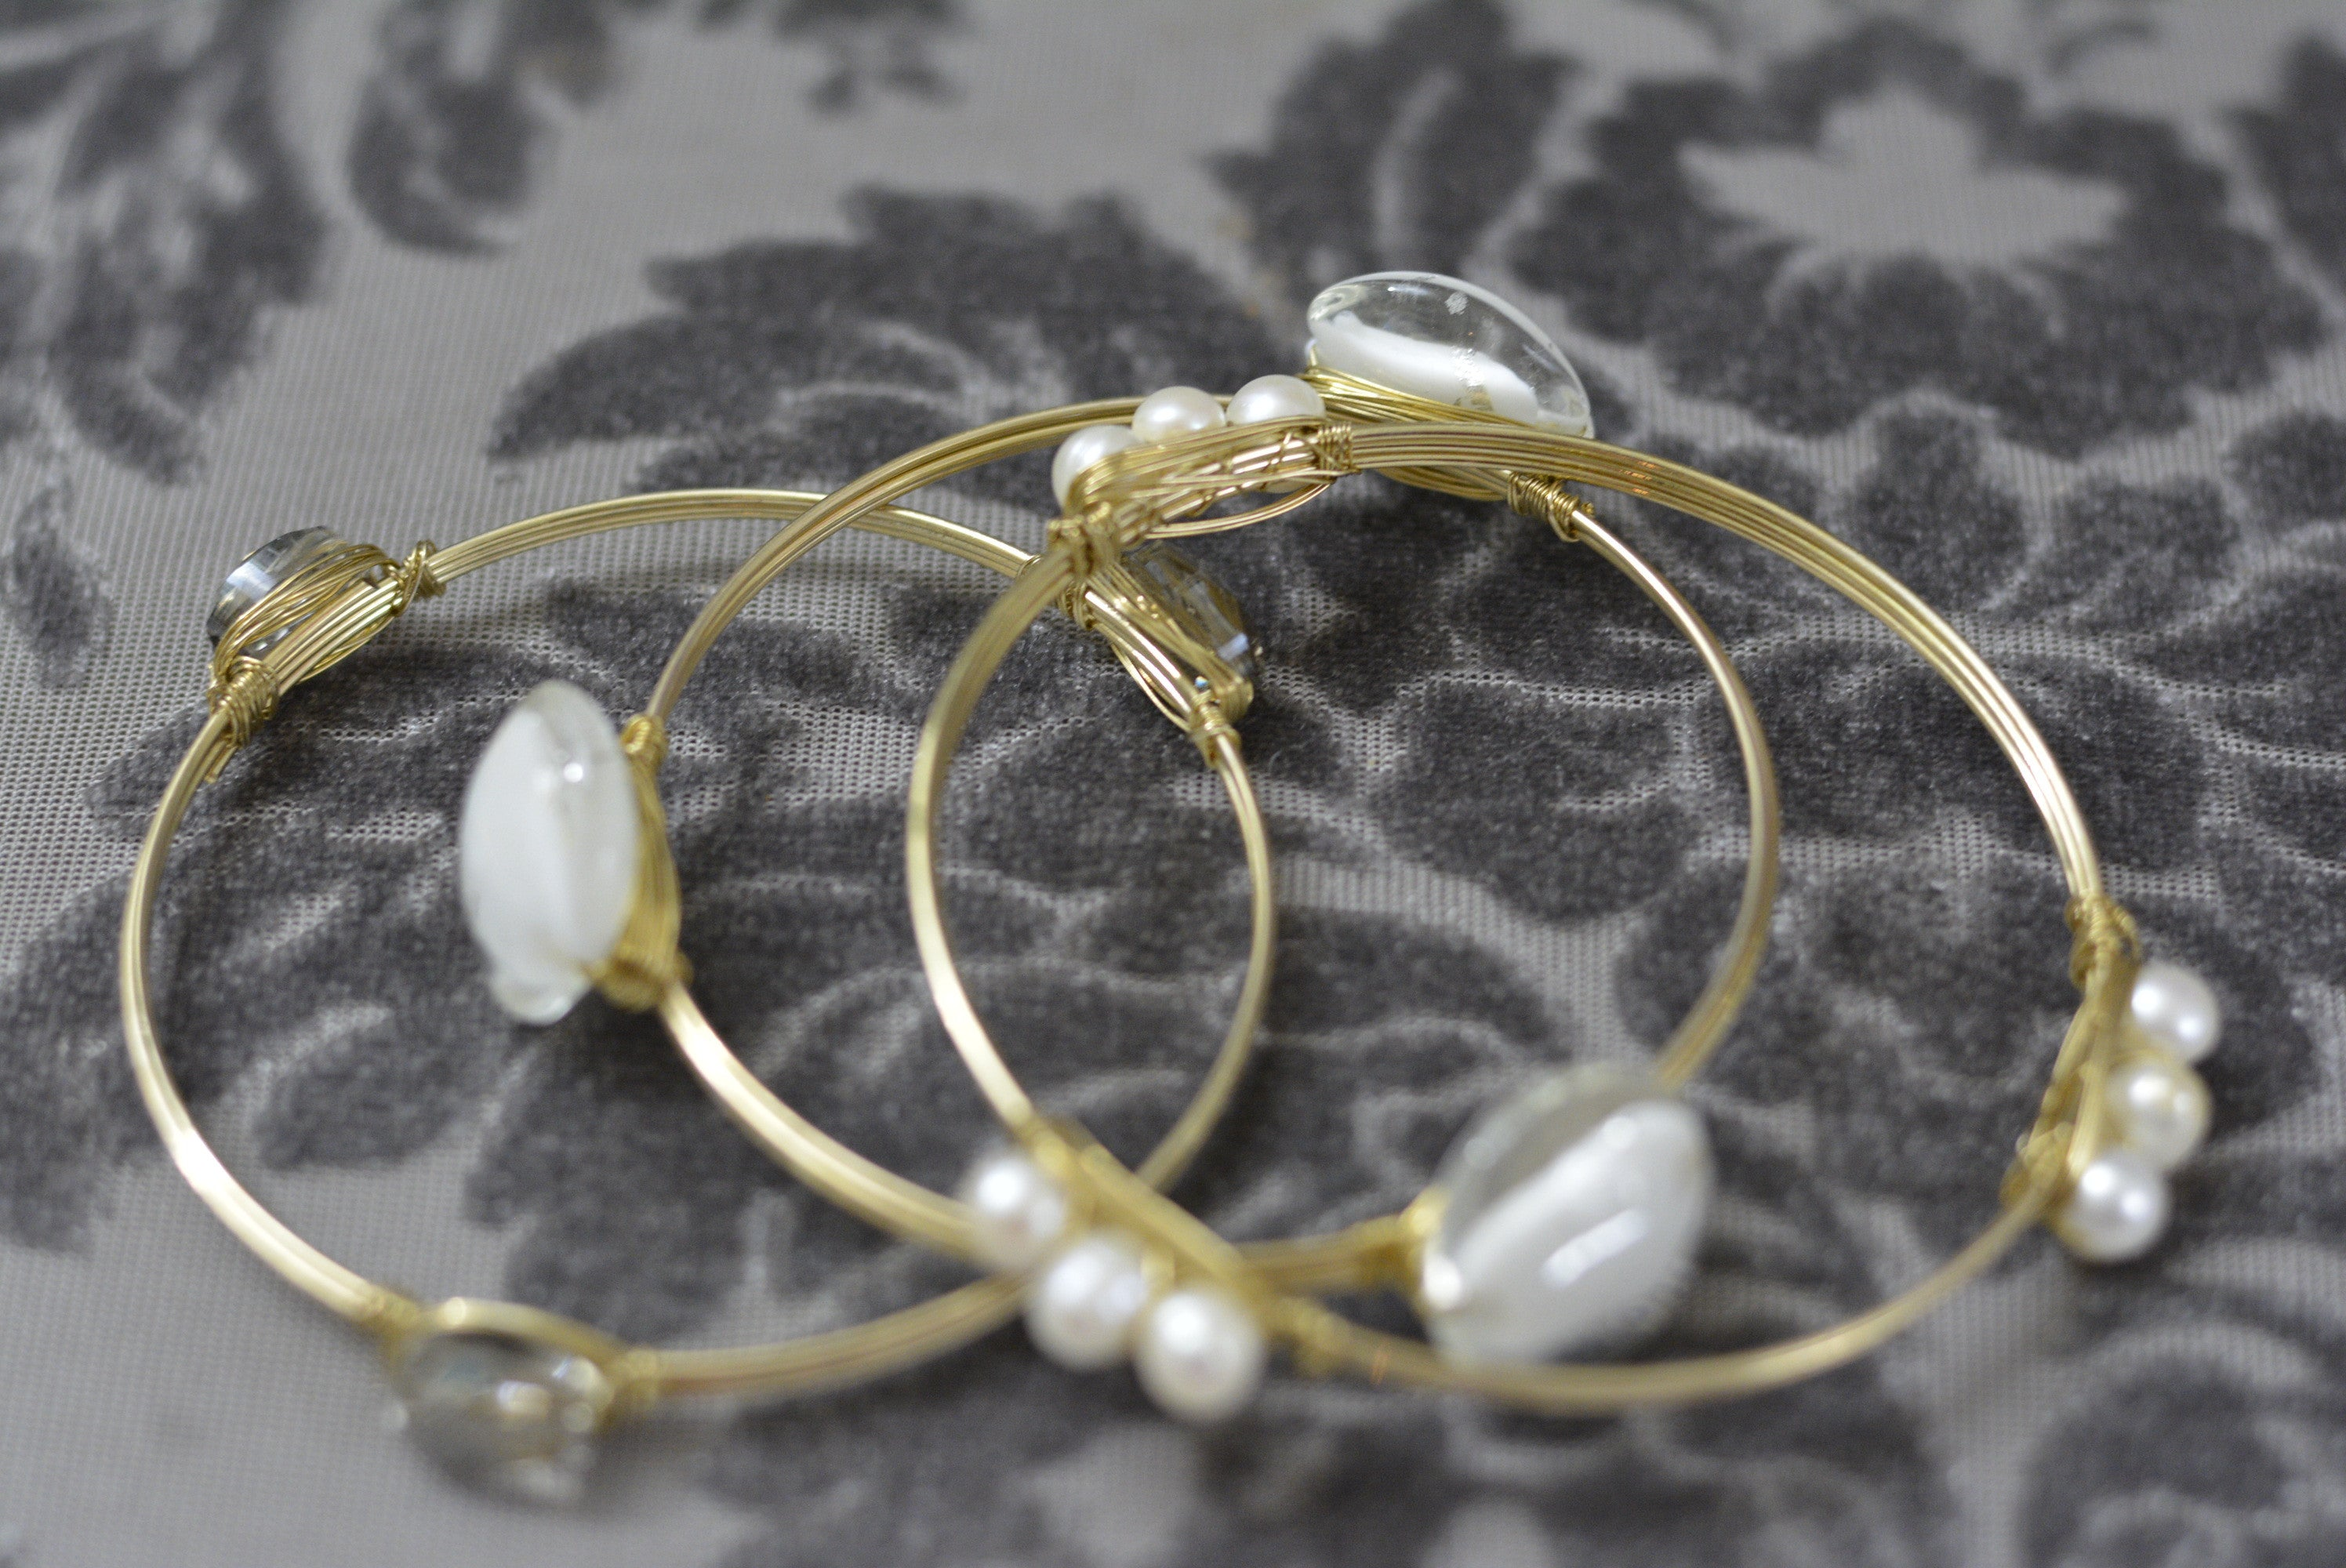 GEMMA - 3 Bangle Wire Bracelet